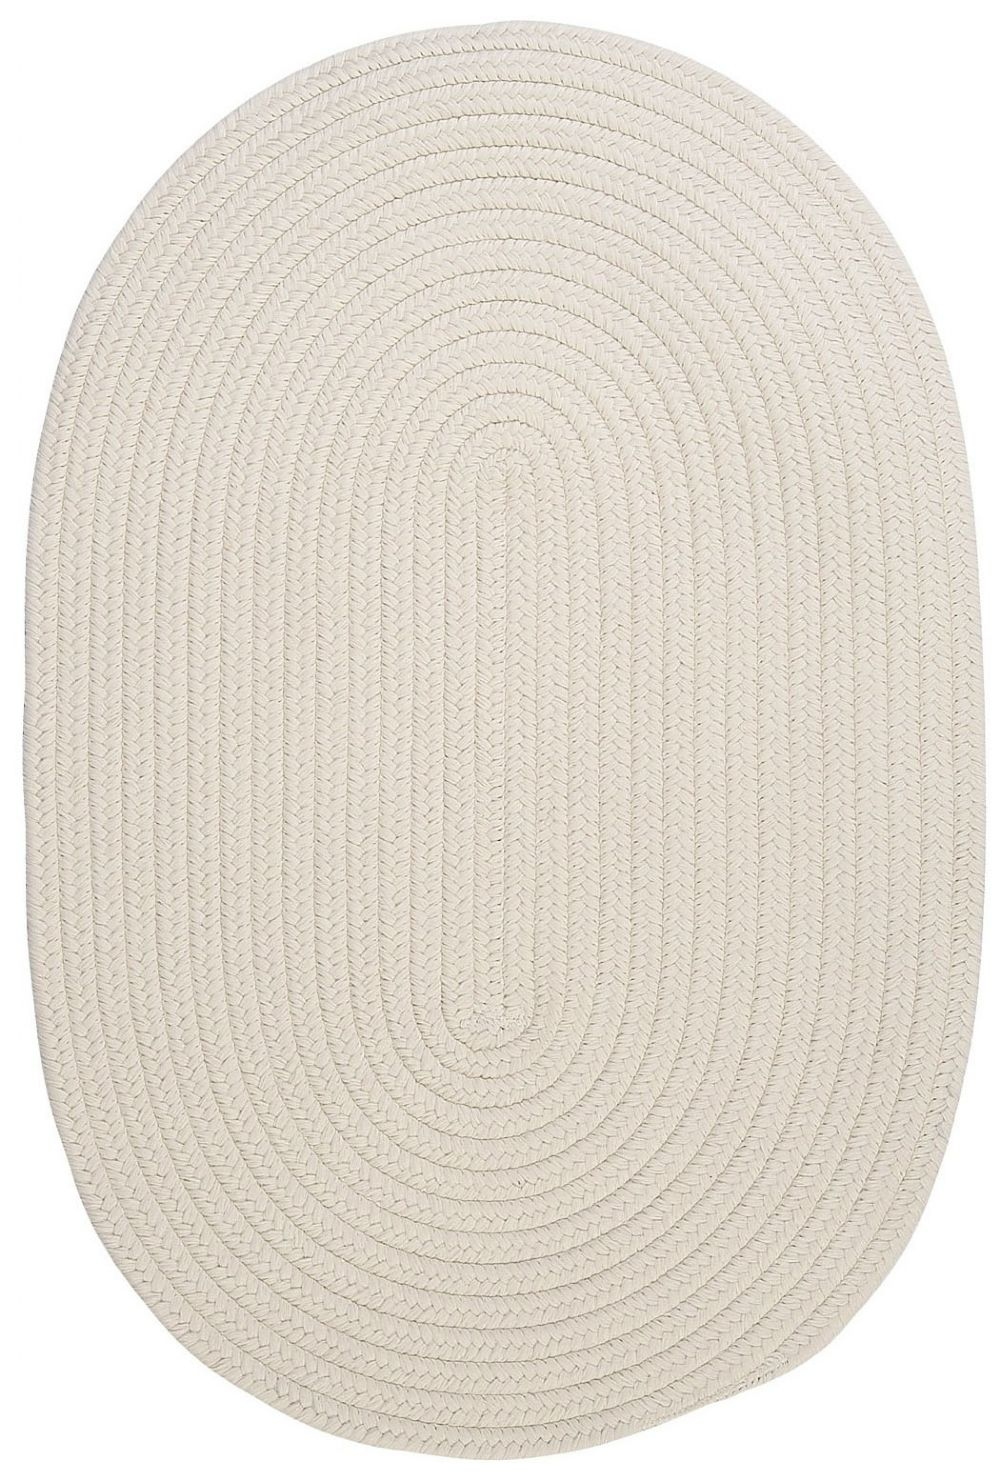 colonial mills boca raton braided area rug collection